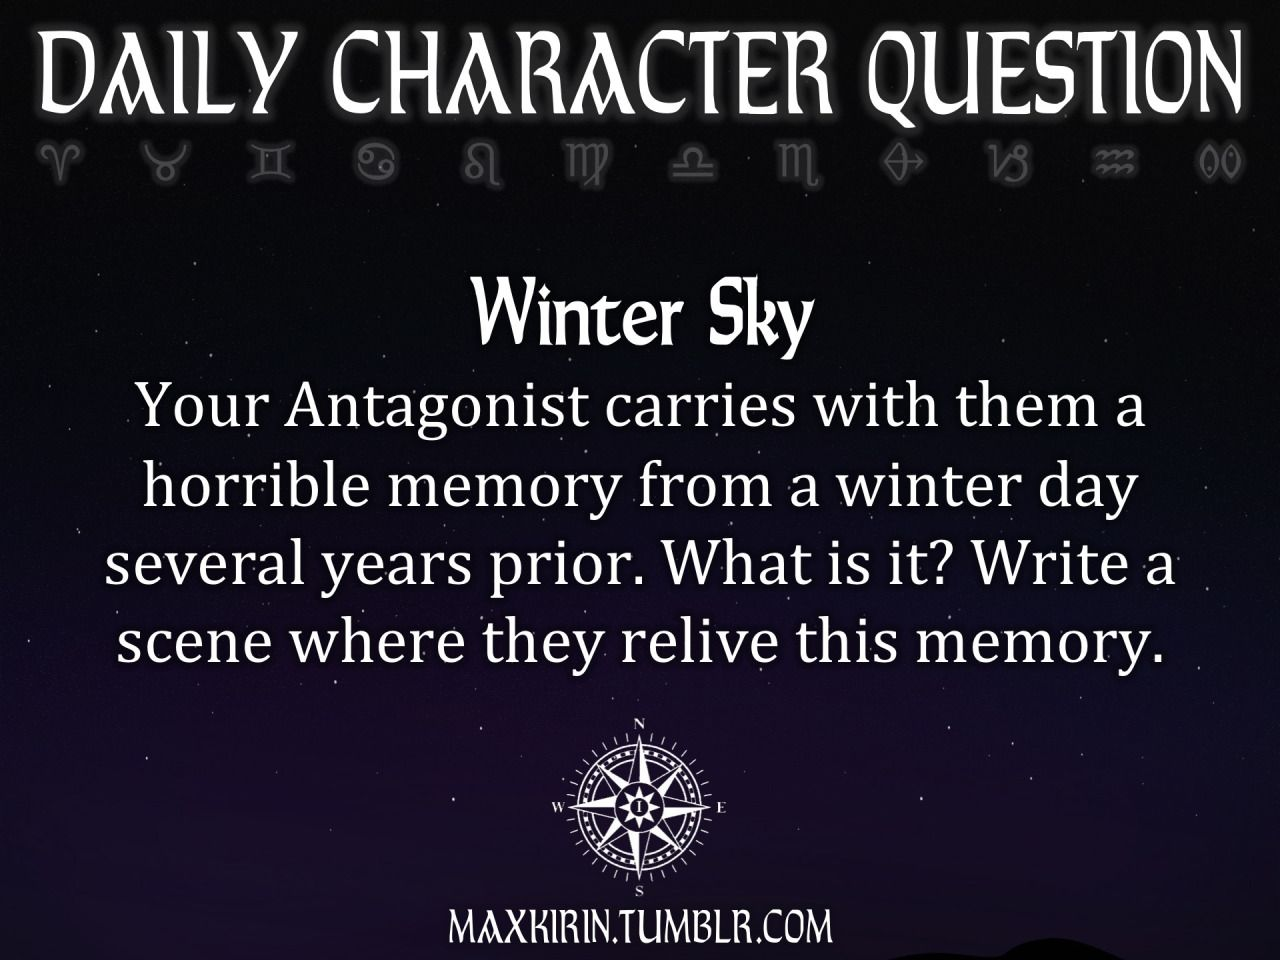 ★ DAILY CHARACTER QUESTION ★  Winter Sky Your Antagonist carries with them a horrible memory from a winter day several years prior. What is it? Write a scene where they relive this memory.  Want to publish a story inspired by this prompt?Click hereto read the guidelines~ ♥︎ And, if you're looking for more writerly content, make sure to follow me:maxkirin.tumblr.com!